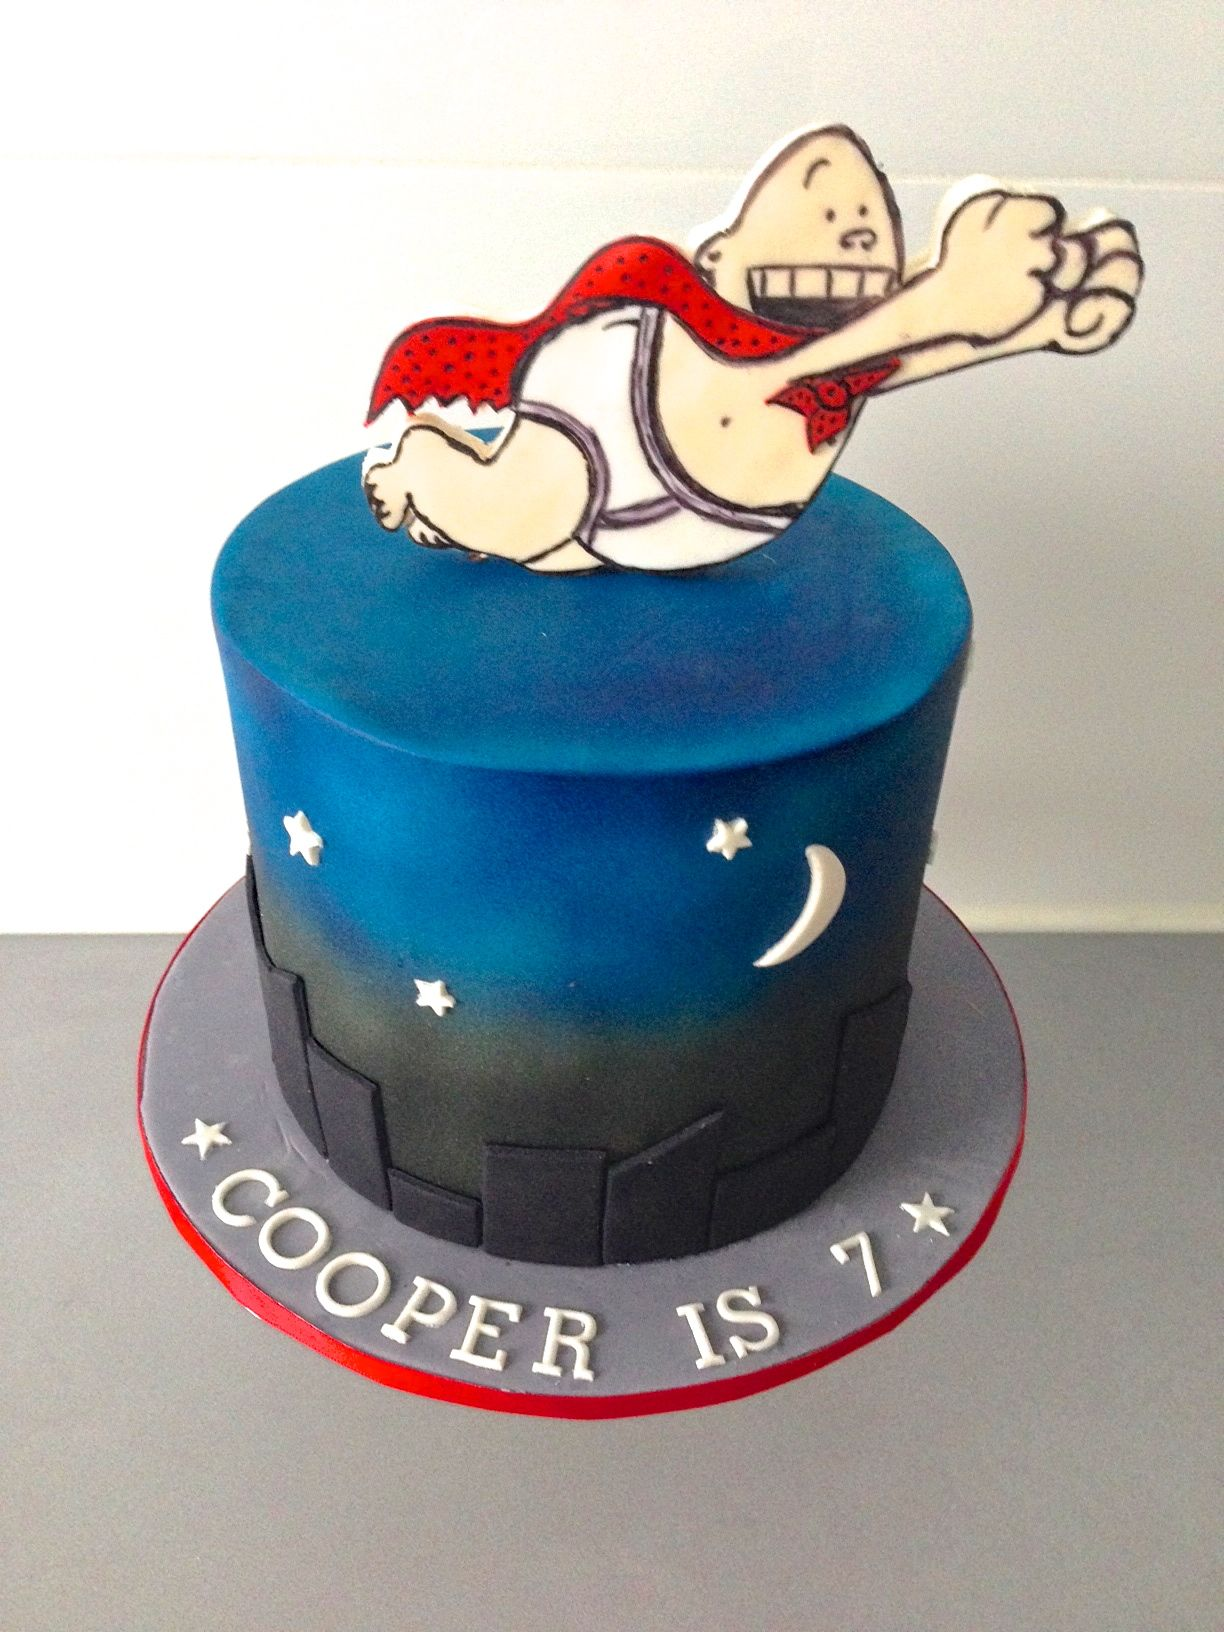 Captain underpants themed cake by finesse cakes by ingrid